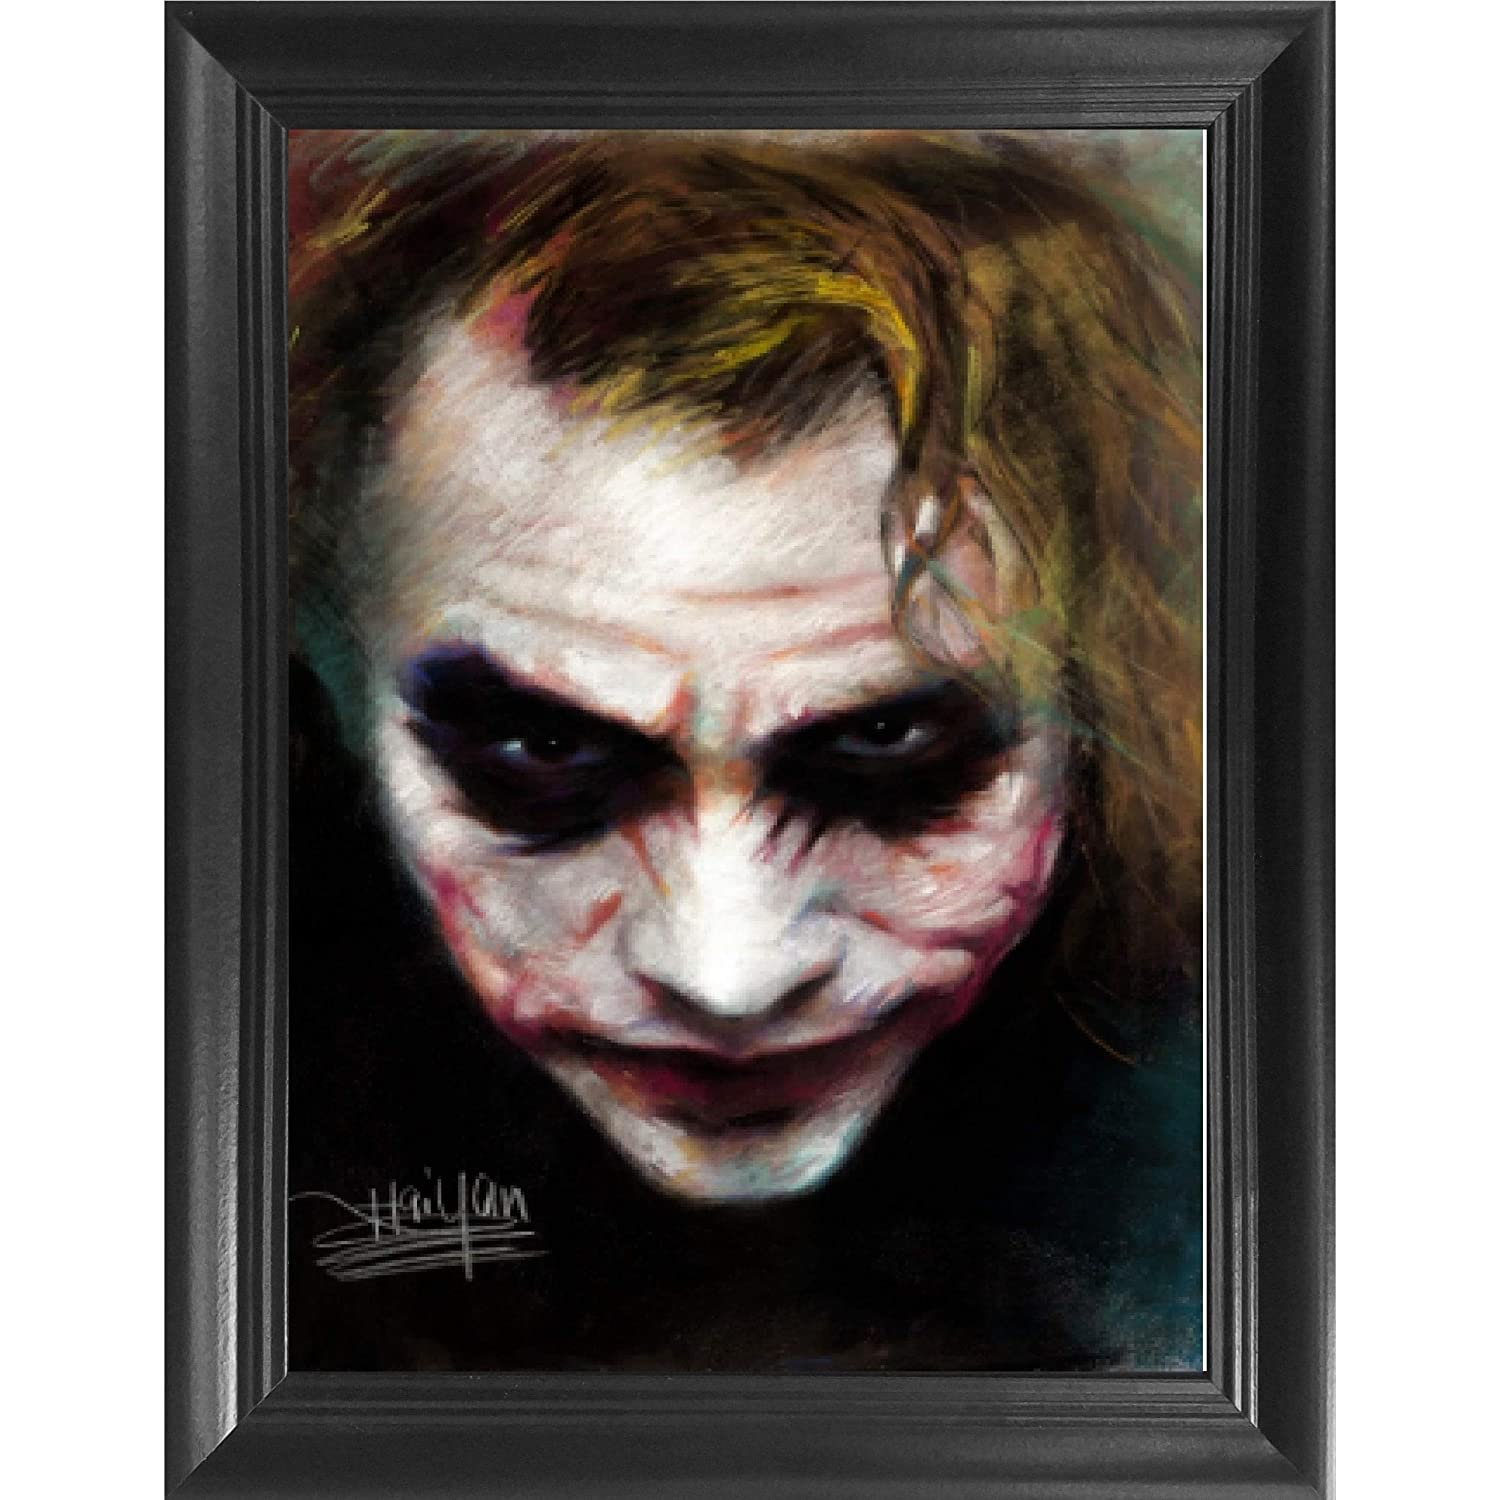 Joker Heath Ledger 3D Poster Wall Art Decor Framed Print | 14.5x18.5 | Lenticular Posters & Pictures | Memorabilia Gifts for Guys & Girls Bedroom | The Dark Knight Batman Movie, DC Comic Book Fan Art